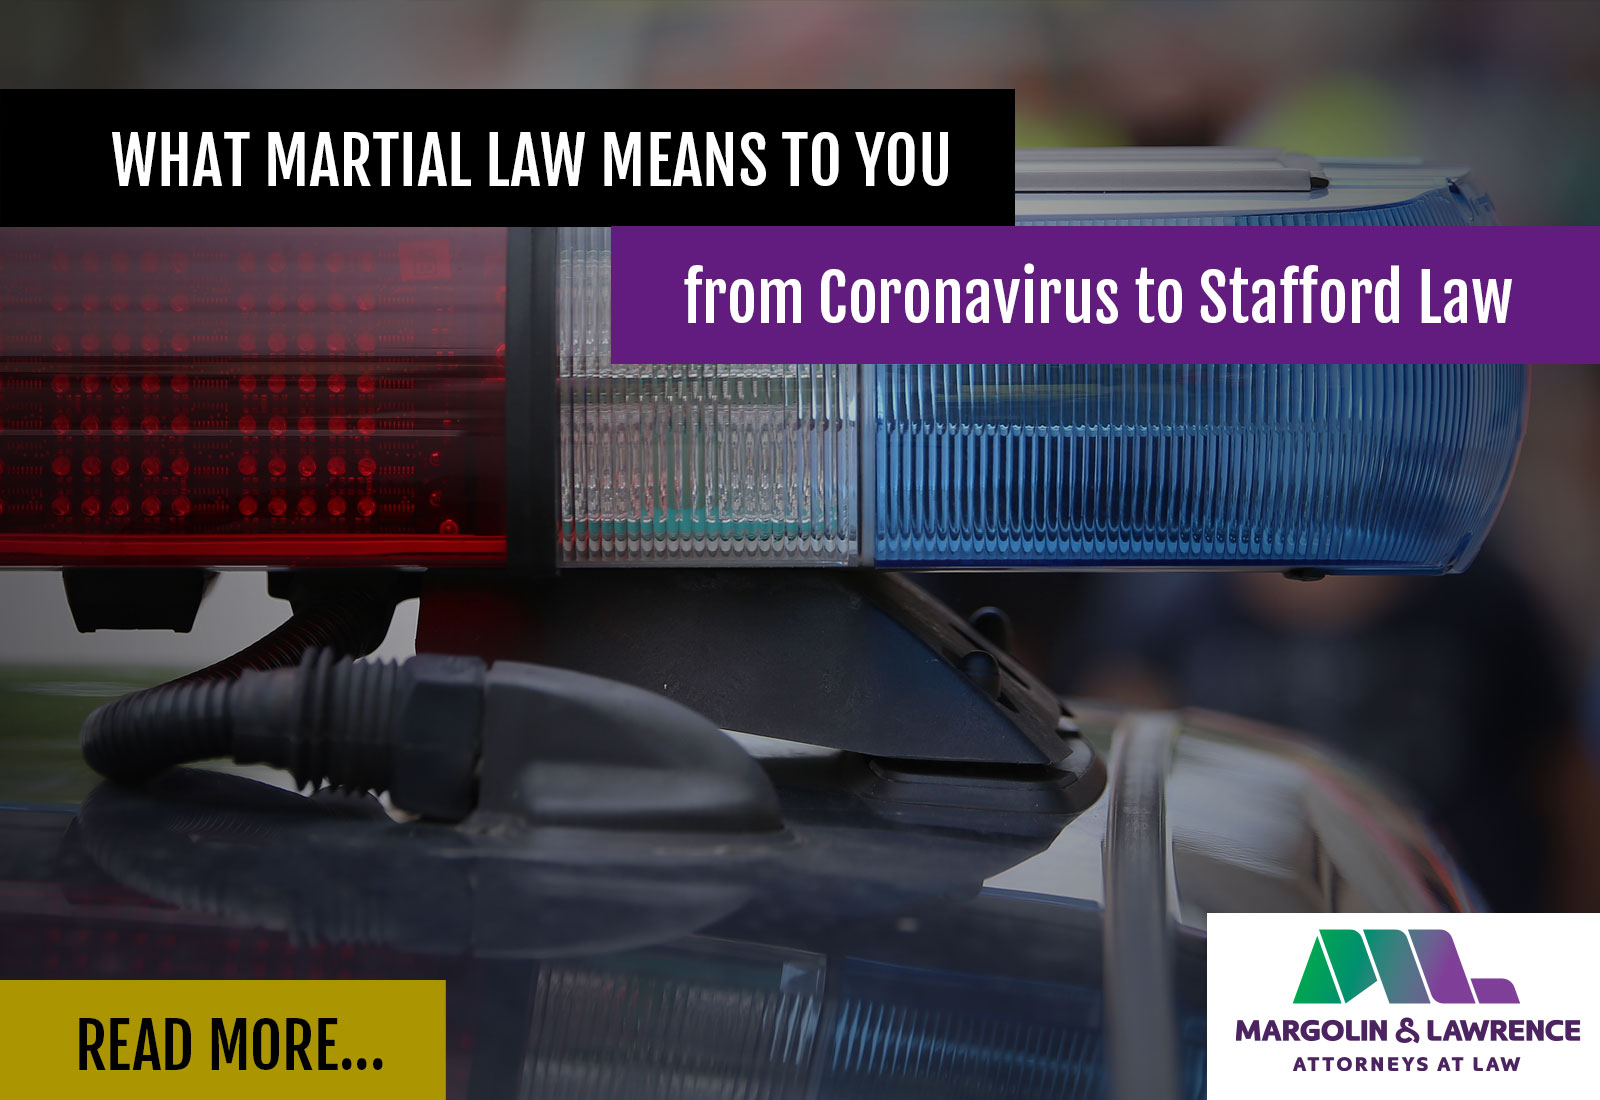 What Martial Law Means to You amidst Coronavirus